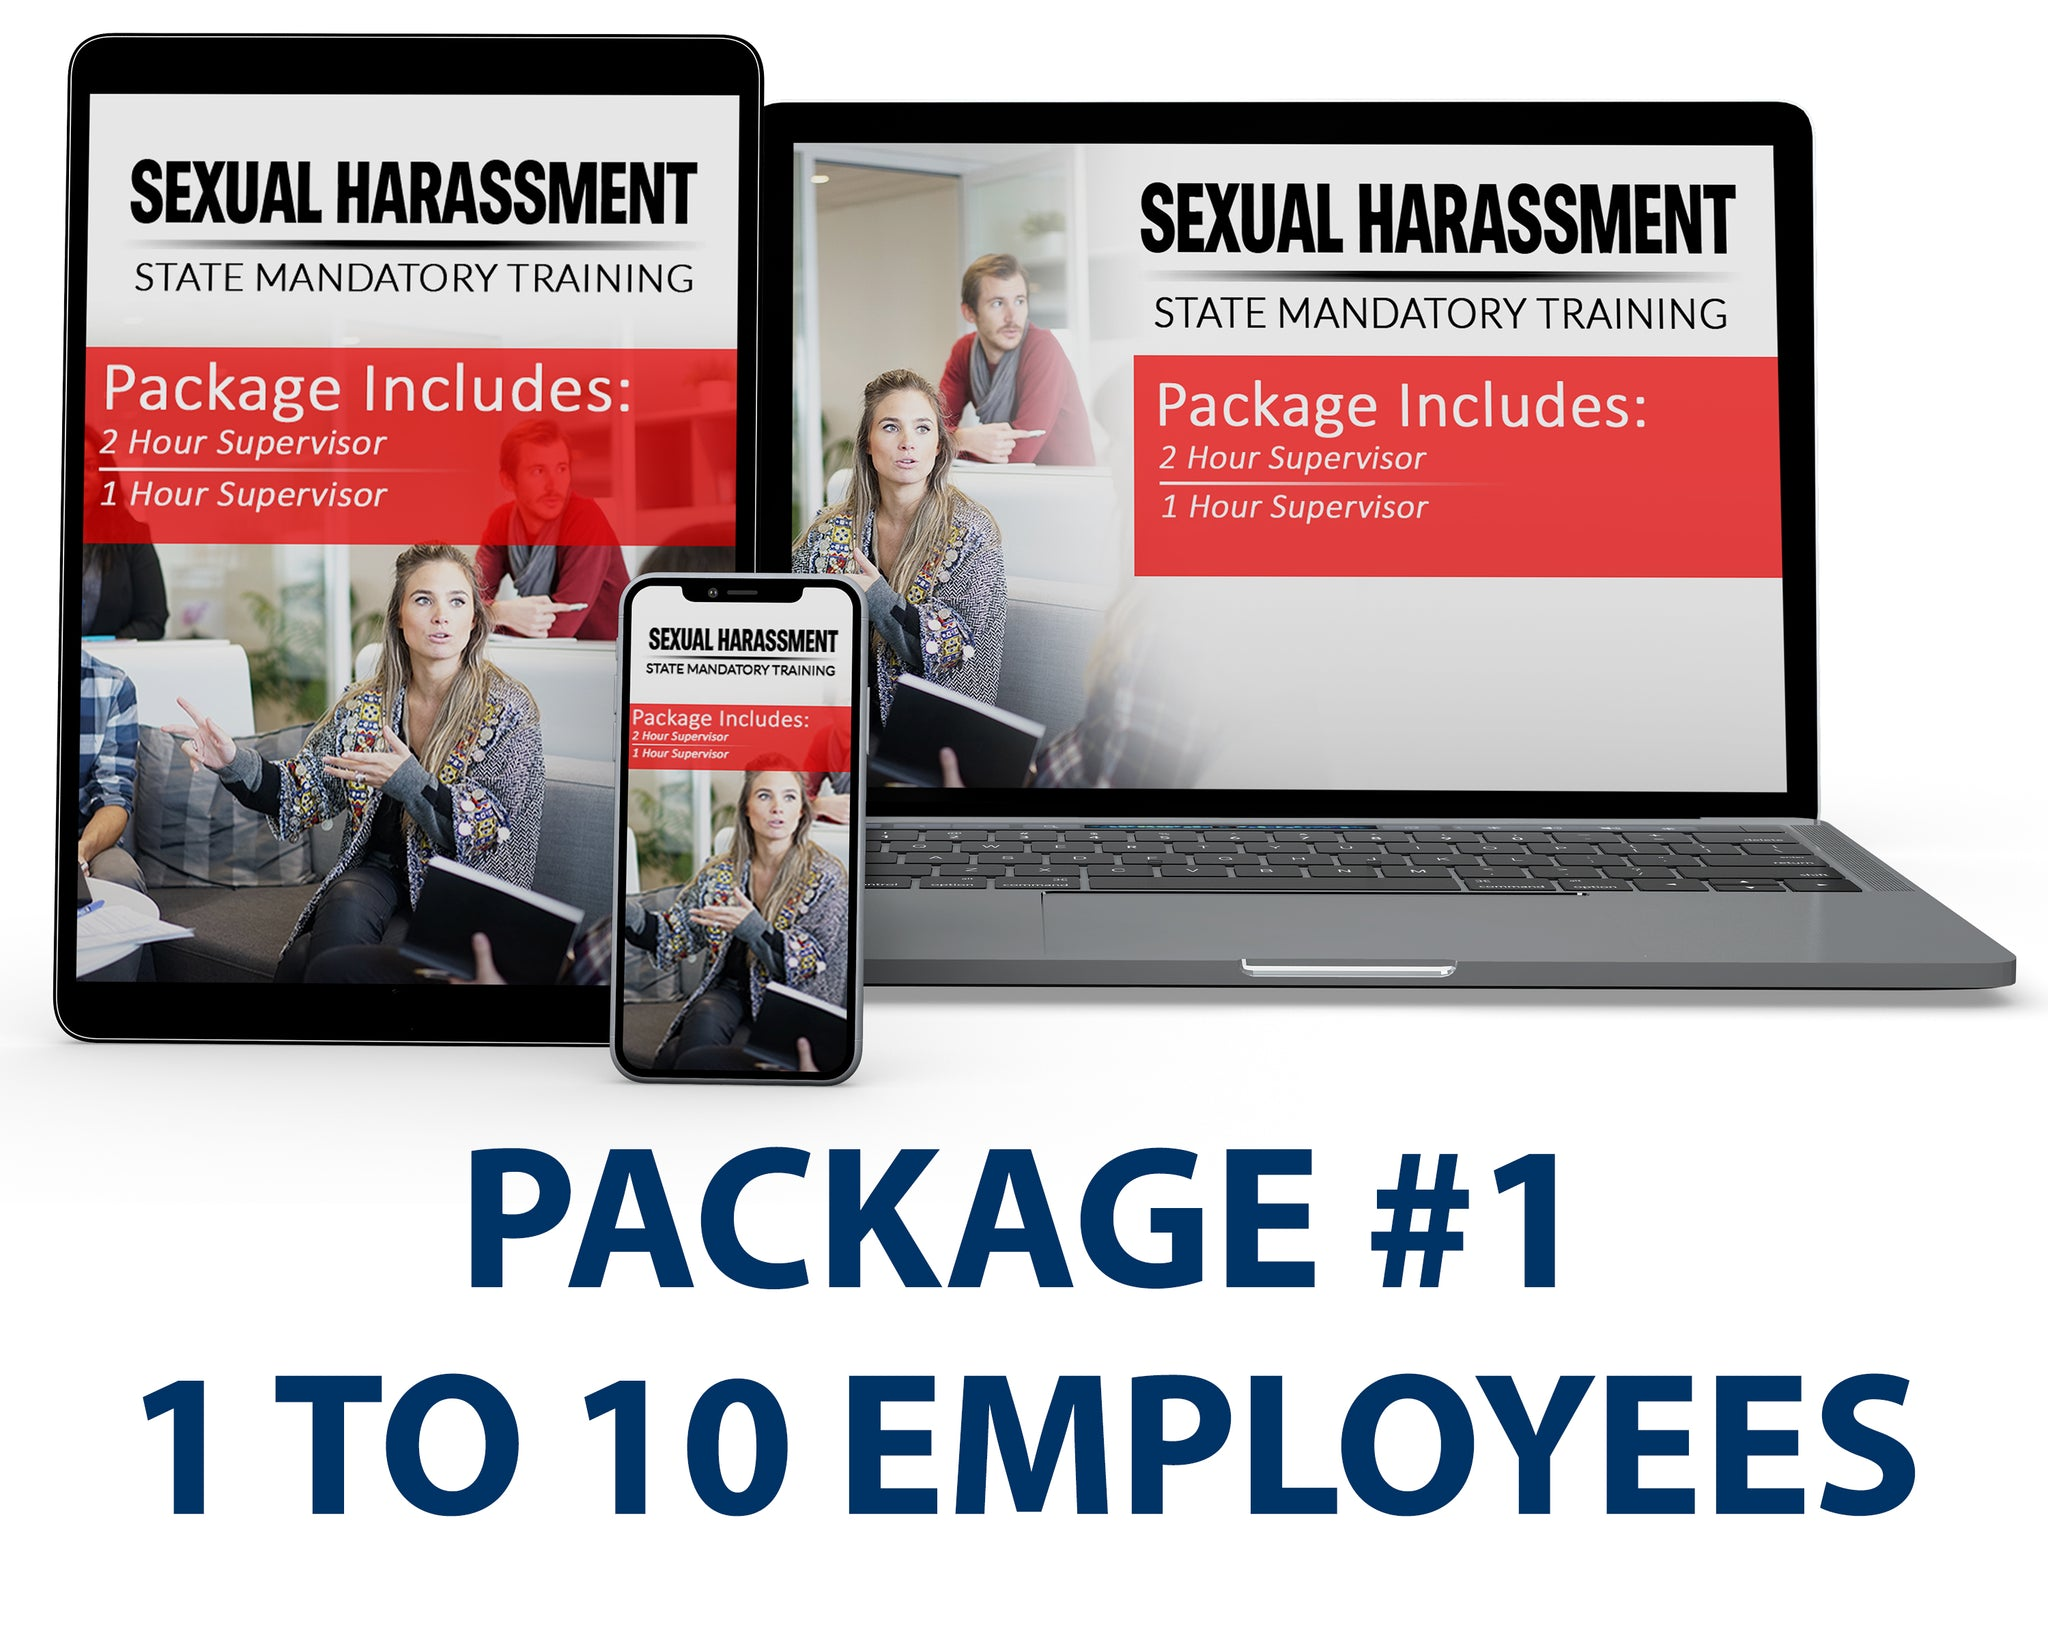 Wilson Elser NY Harassment Package #1 (1-10 Employees) - myCEcourse